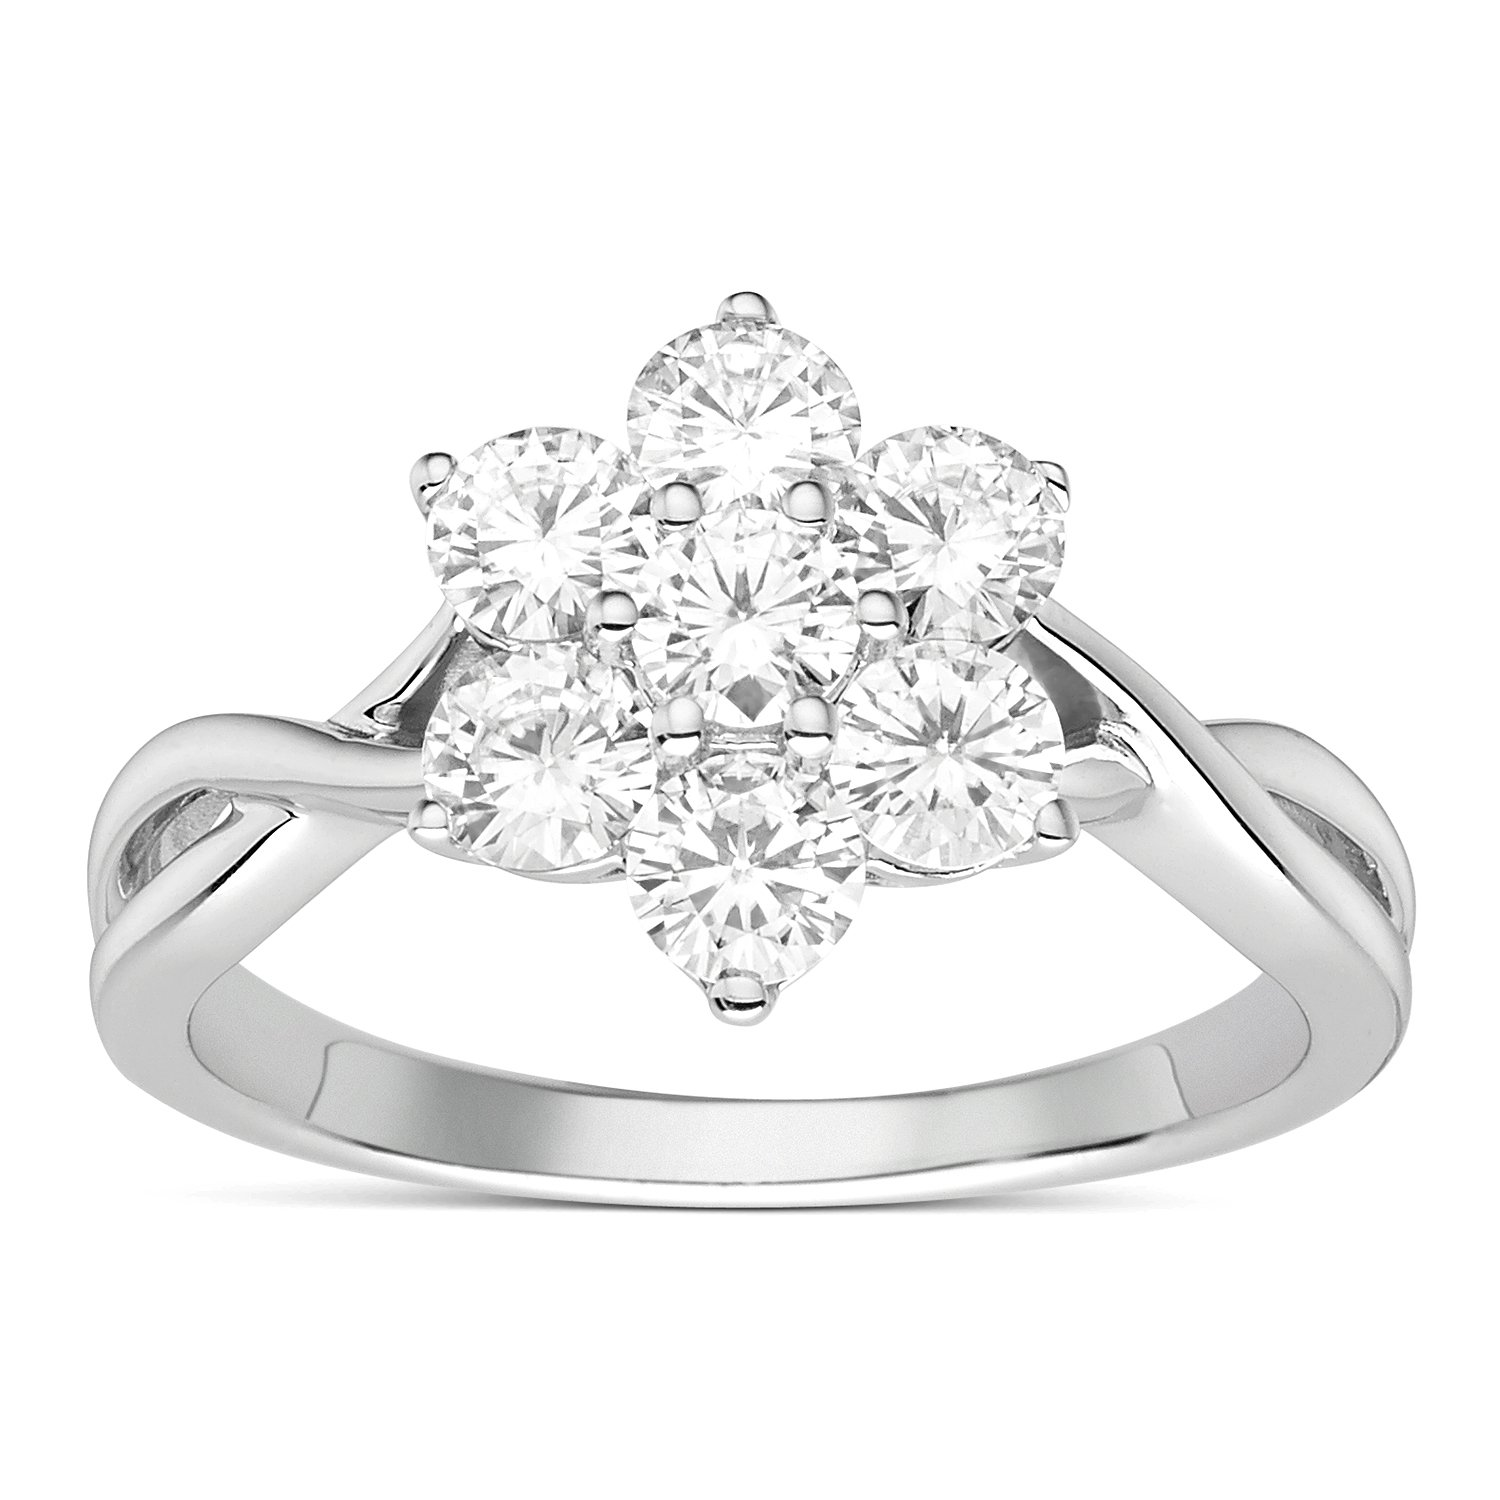 Forever Classic Round Cut 3.5mm Moissanite Cluster Ring-size 9, 1.12cttw DEW By Charles & Colvard by Charles & Colvard